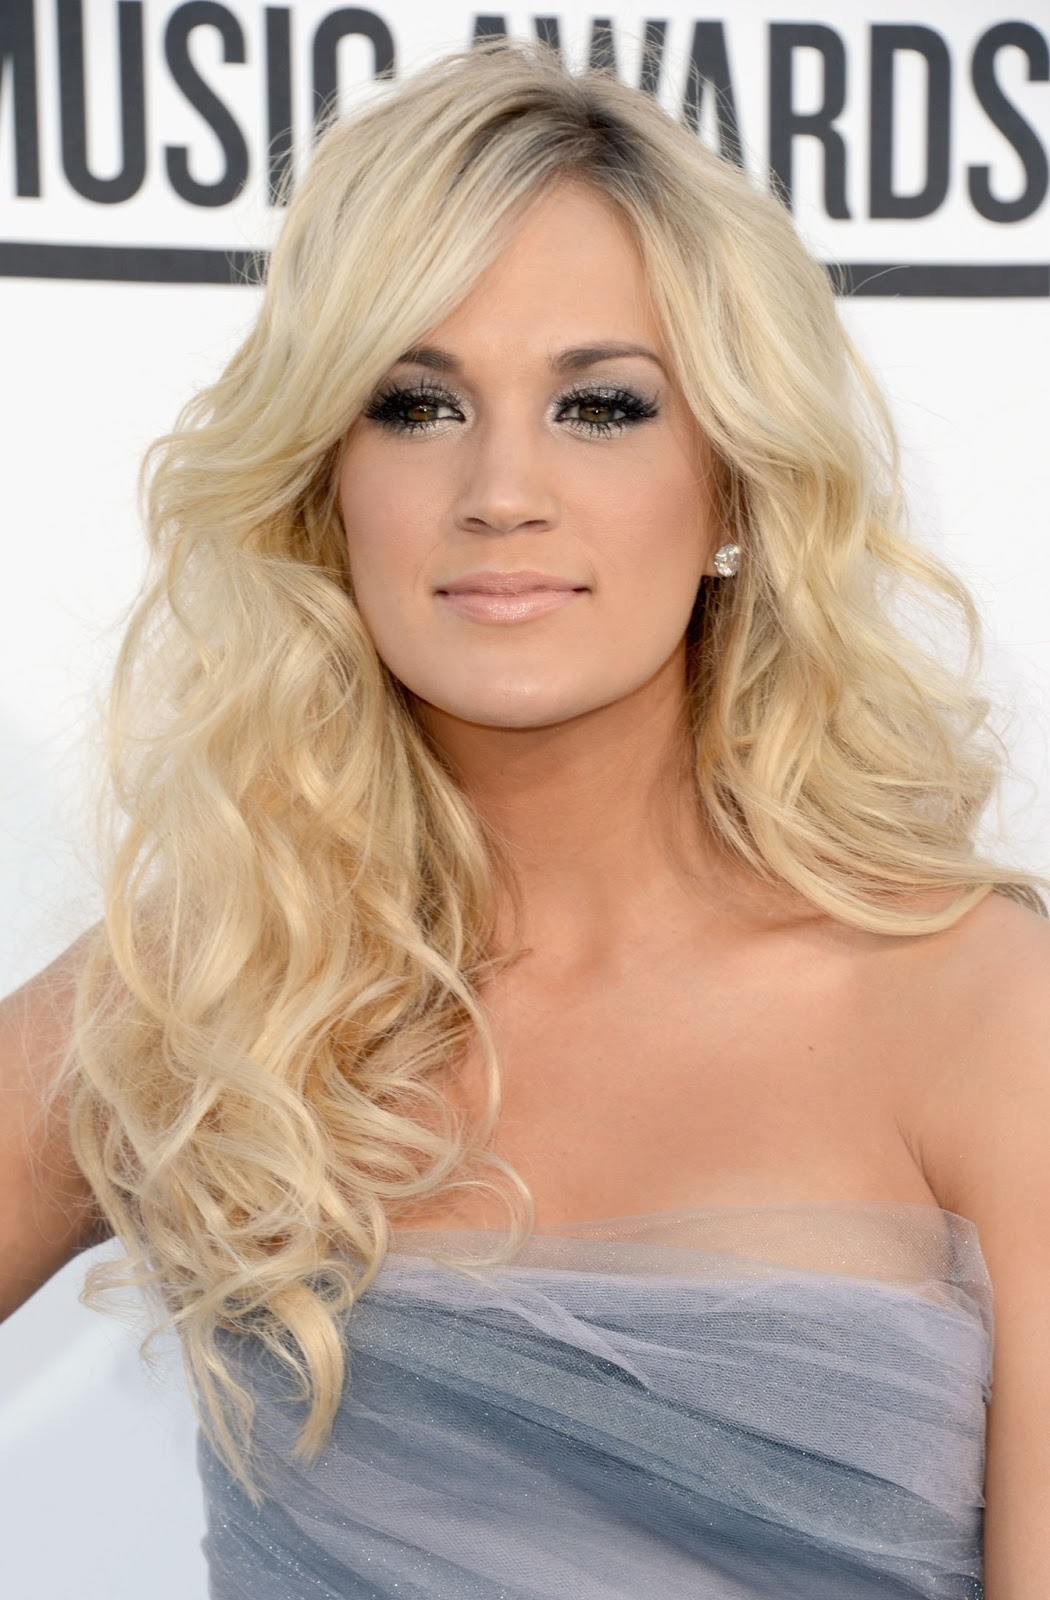 15ede3824d Carrie Underwood photos. Posted by RAJA KUMAR at 02 58